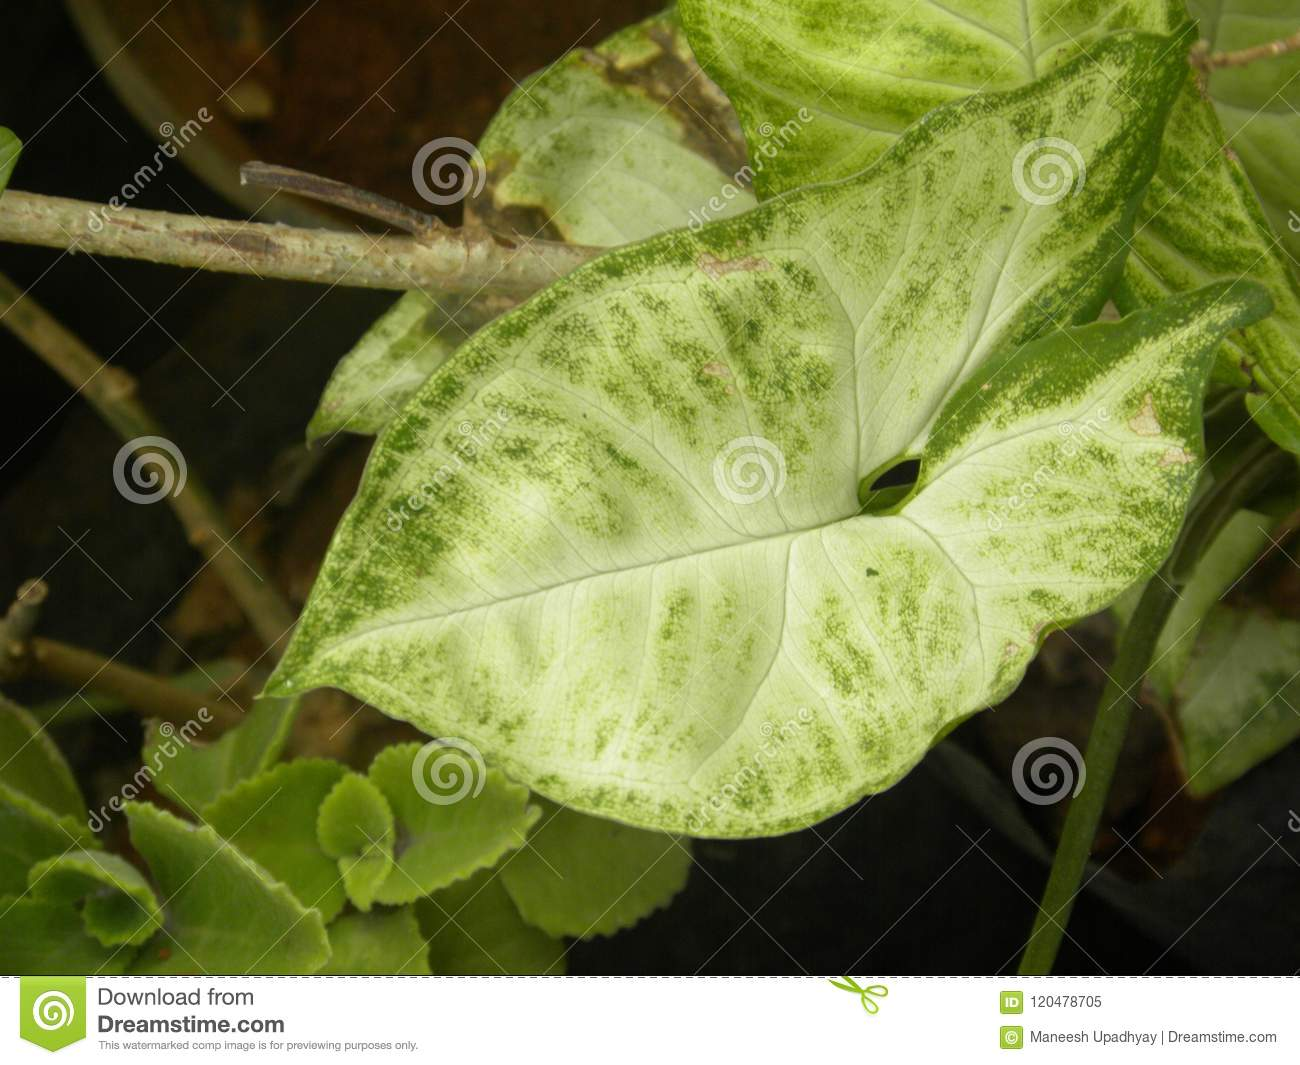 Big White And Green Color Leaf Of Caladium Plant Stock Image - Image ...